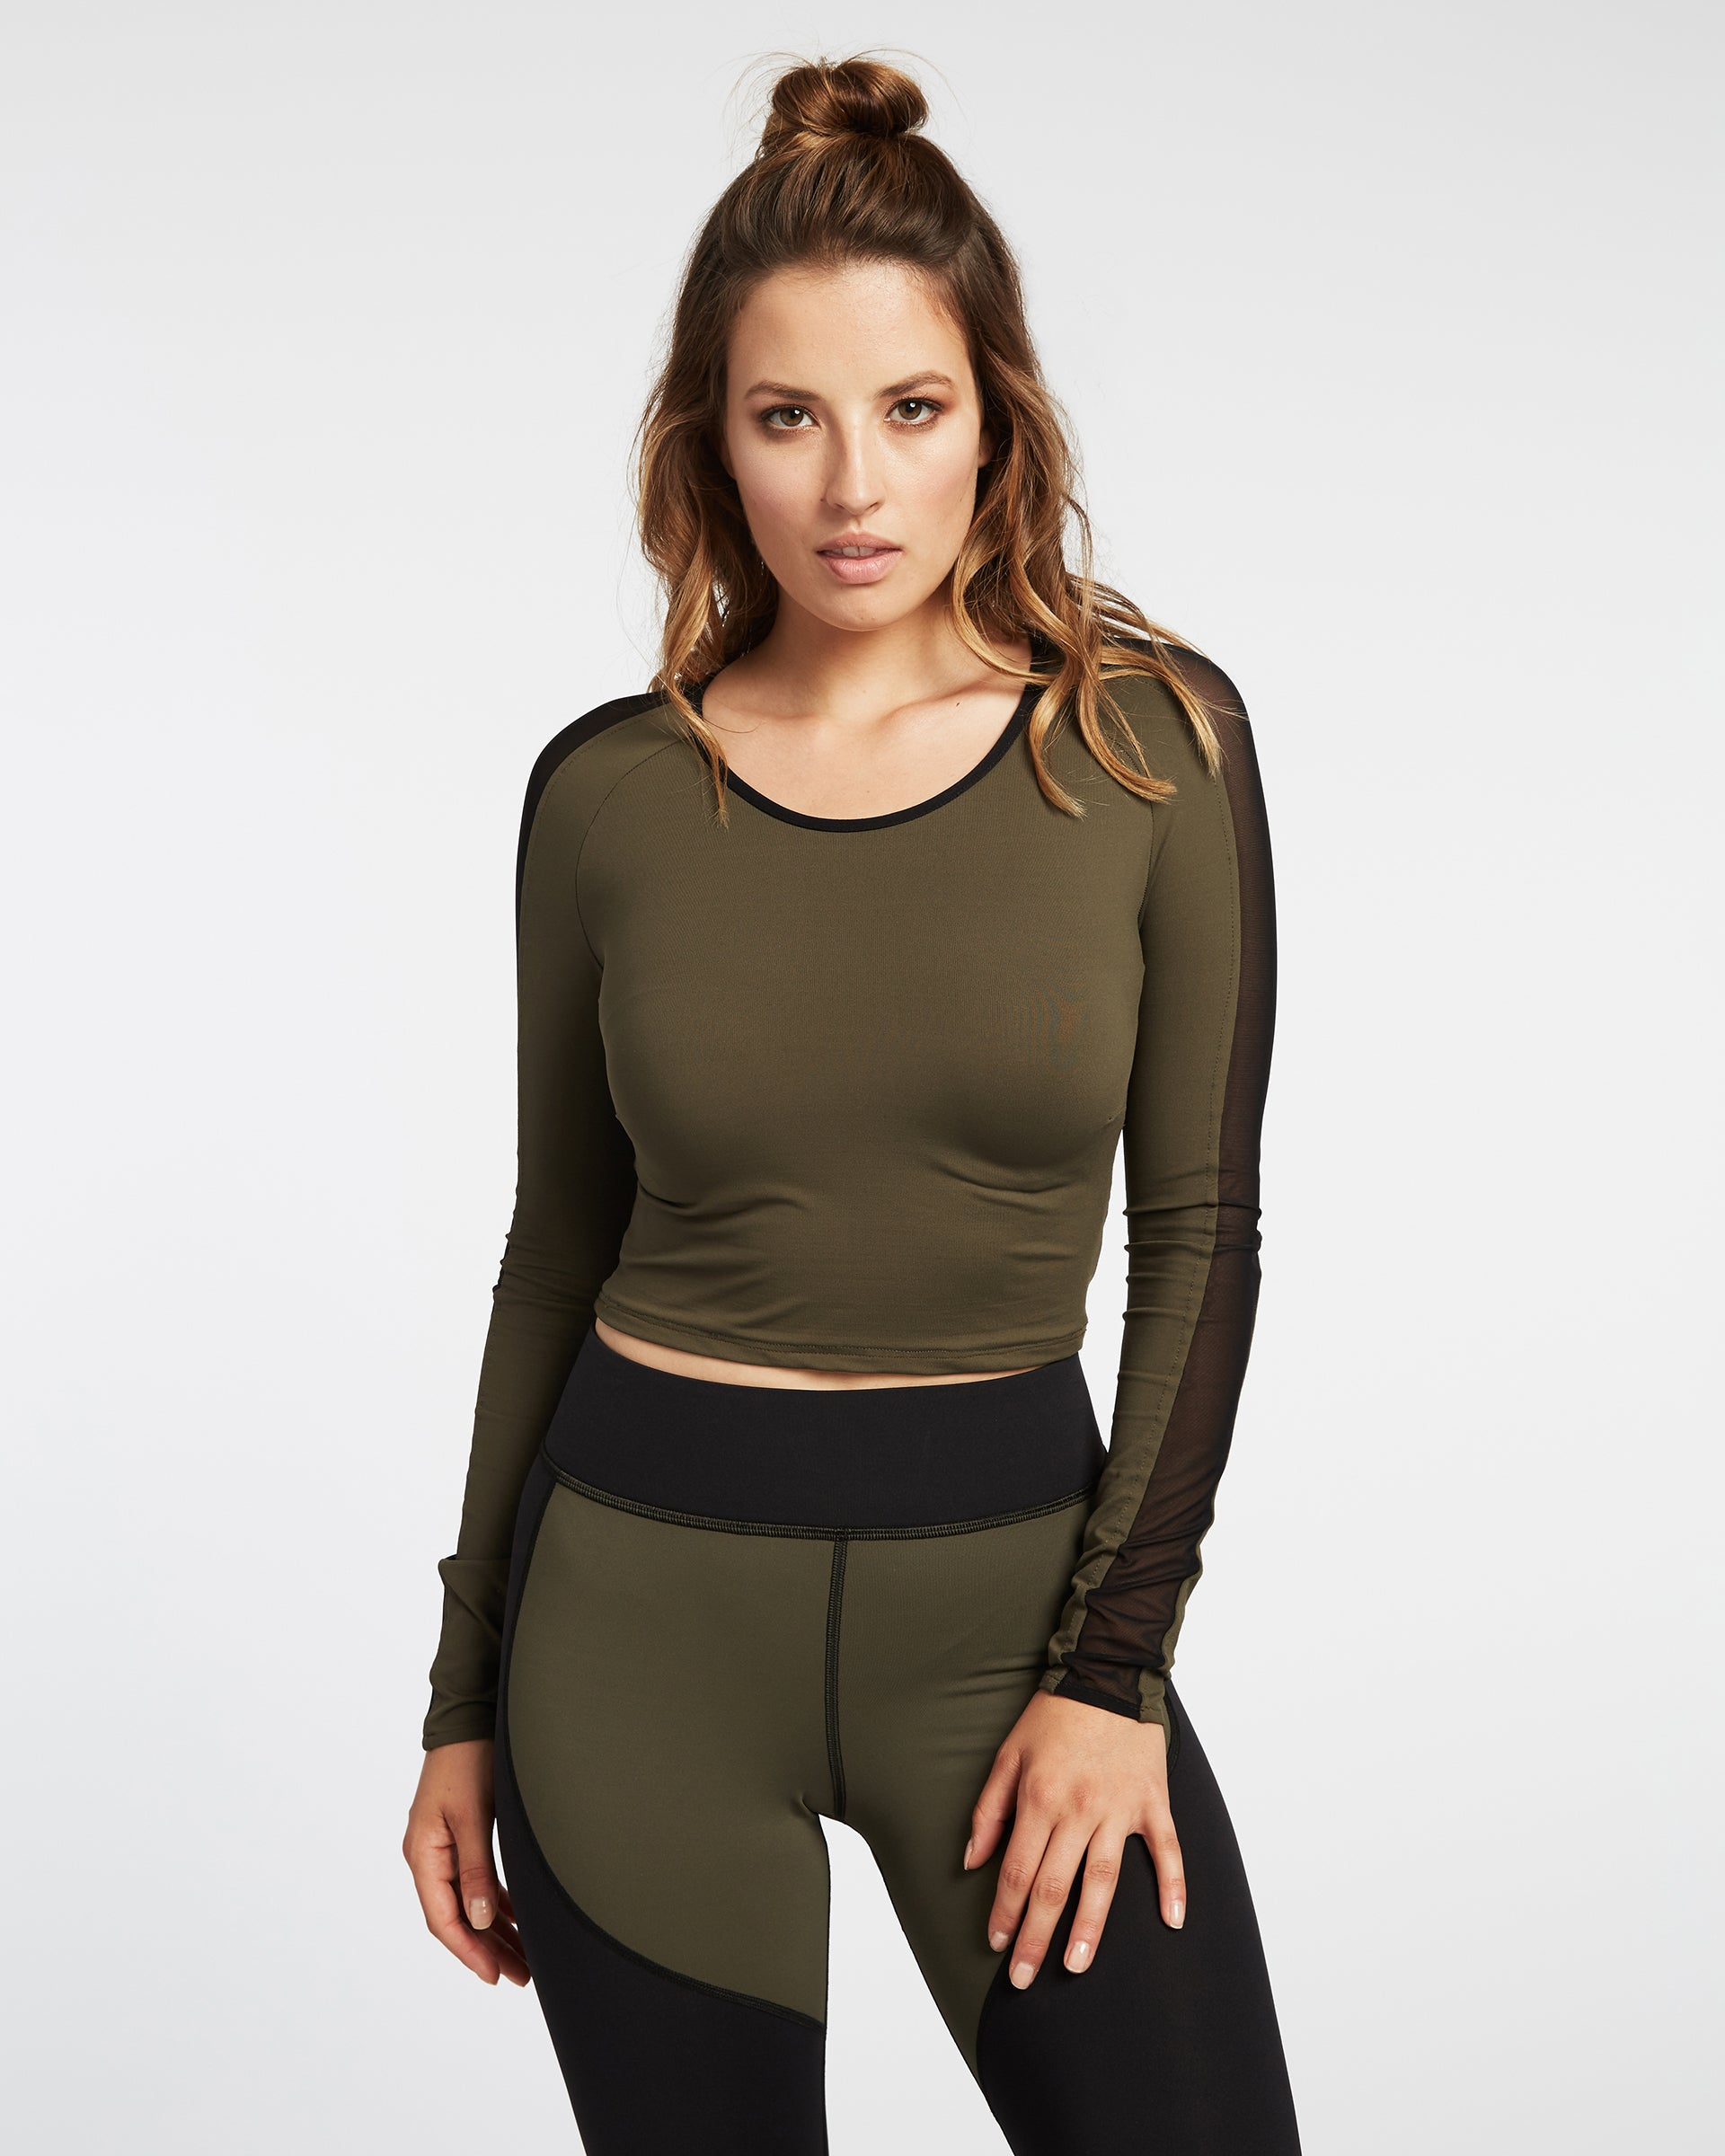 bolt-crop-top-olive